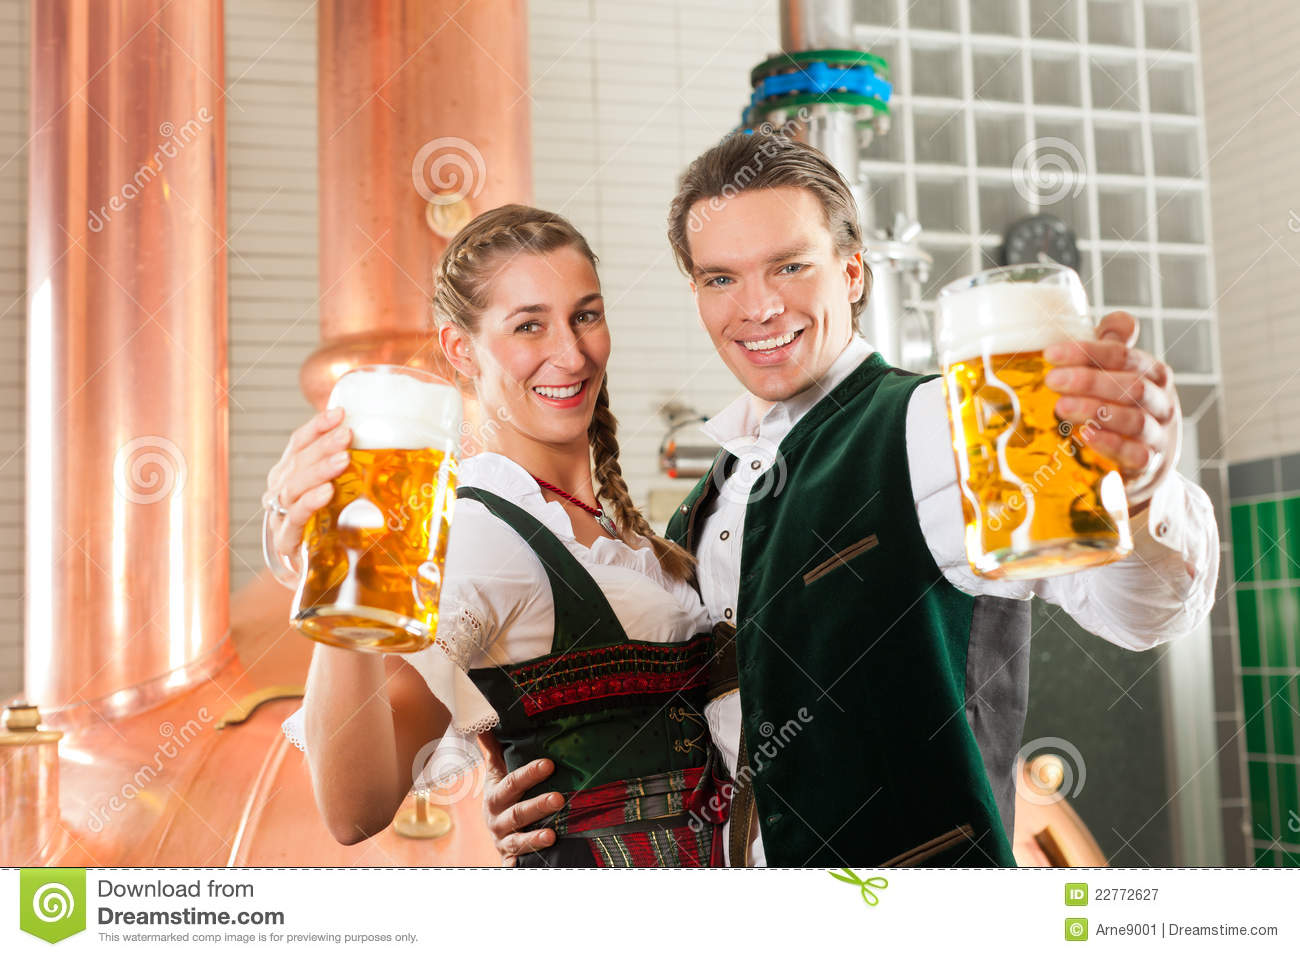 Harm of beer for men and women. Harm of non-alcoholic beer 46